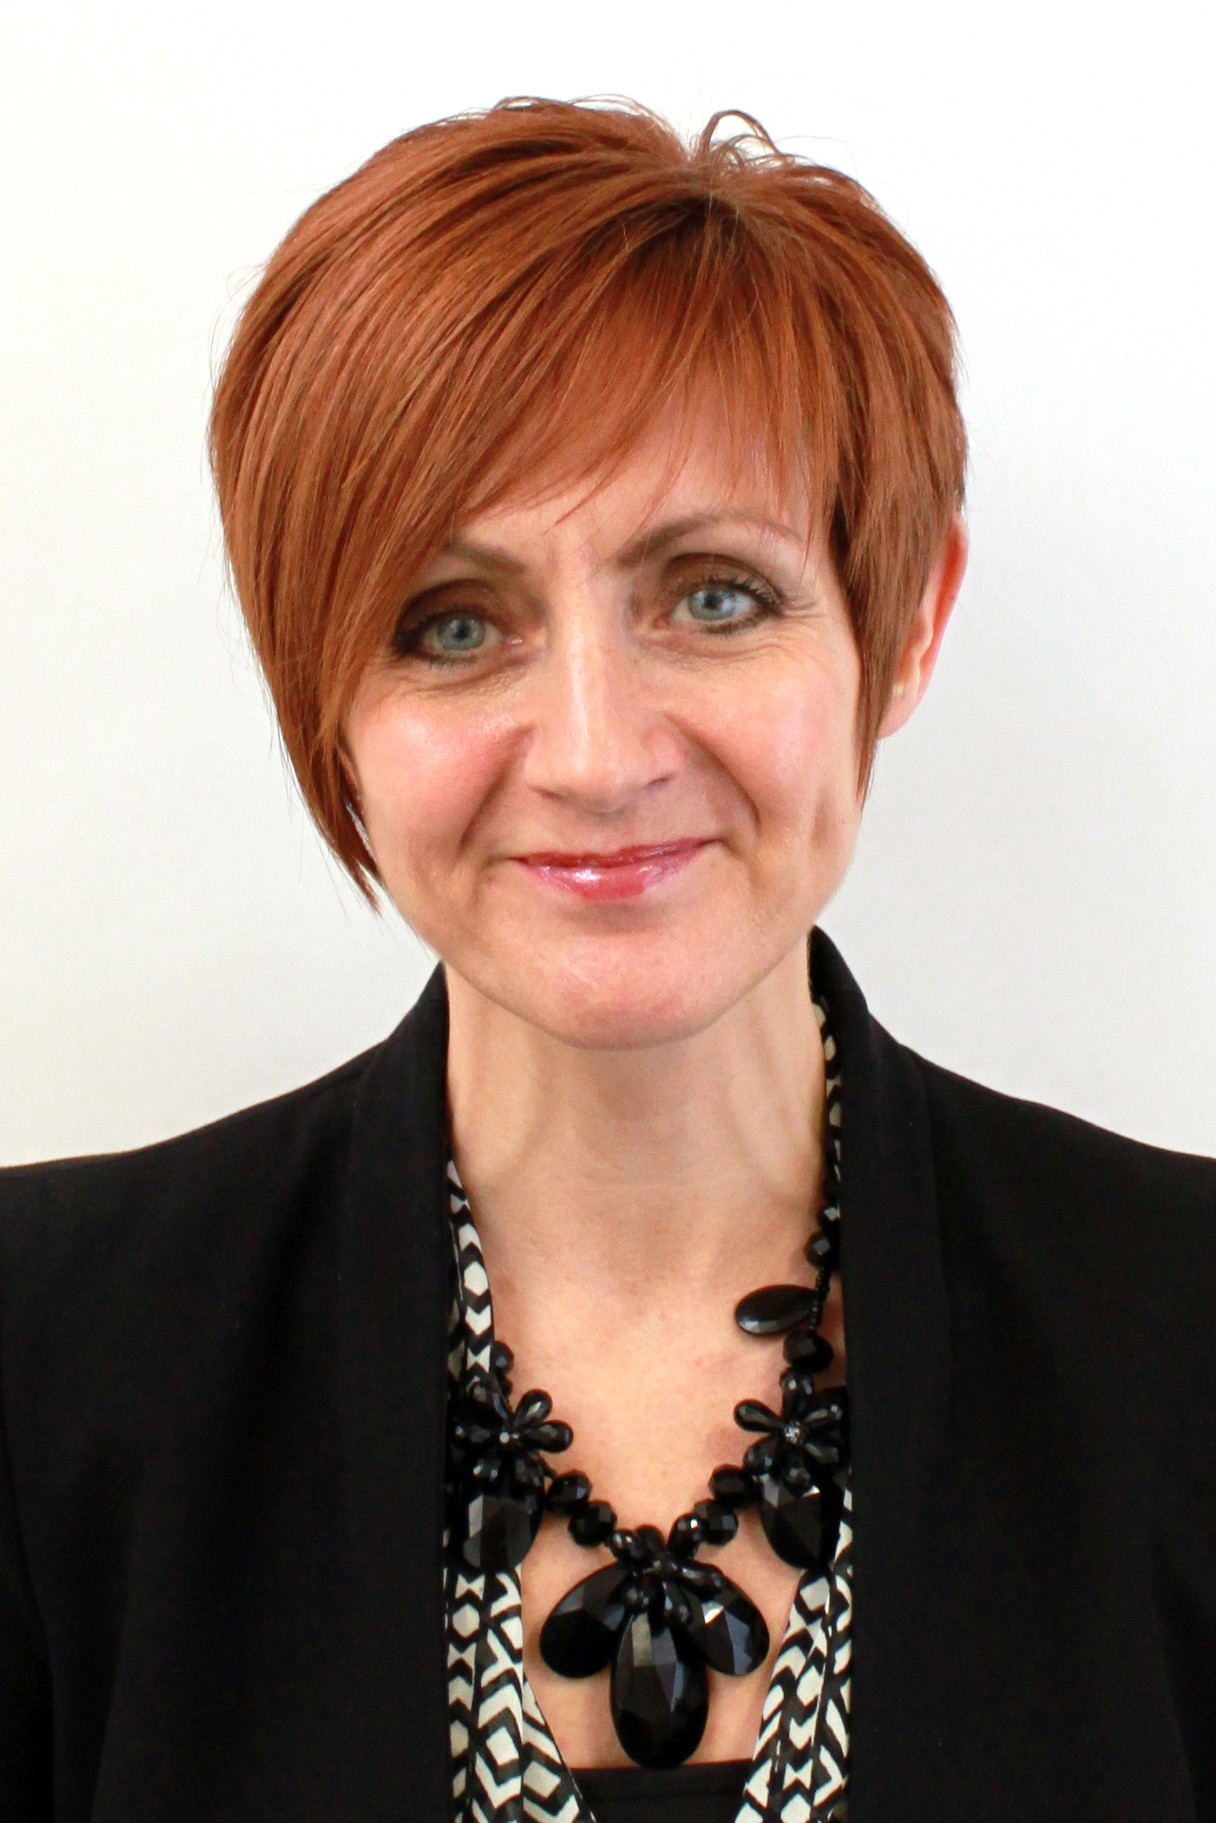 Liz Romaniak, interim chief executive of Bradford District Care NHS Foundation Trust,